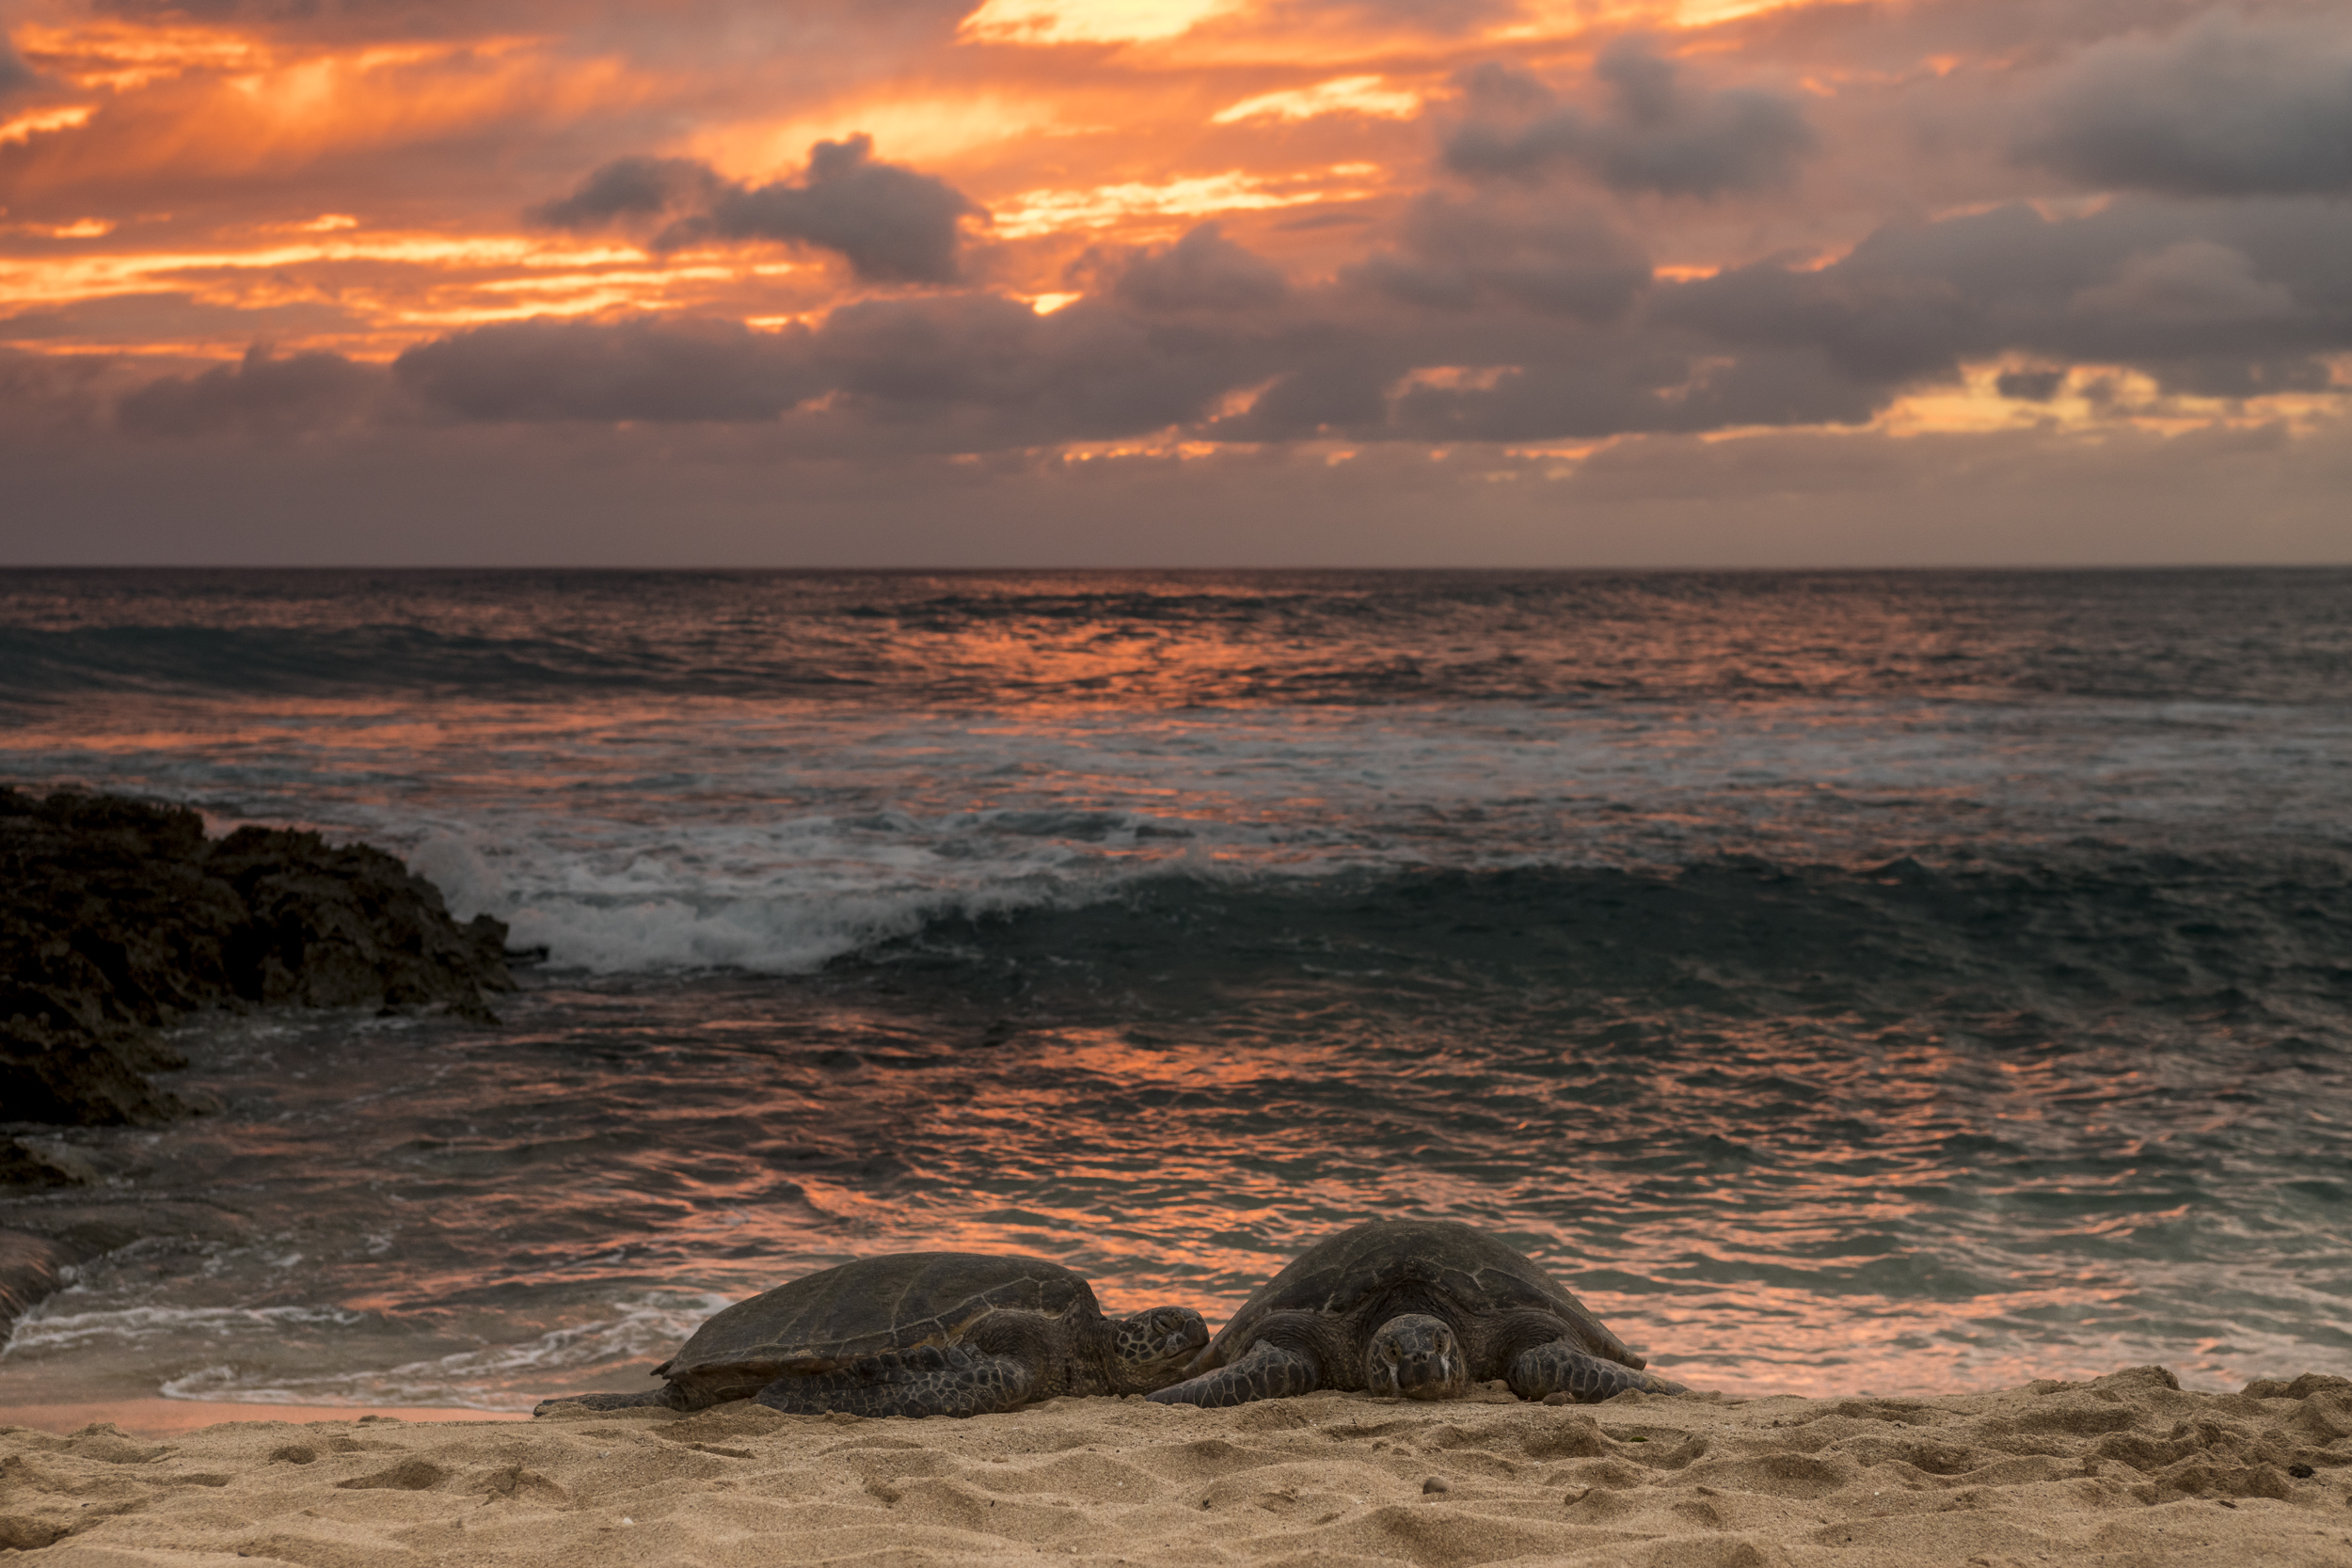 photo of turtles on beach at sunset